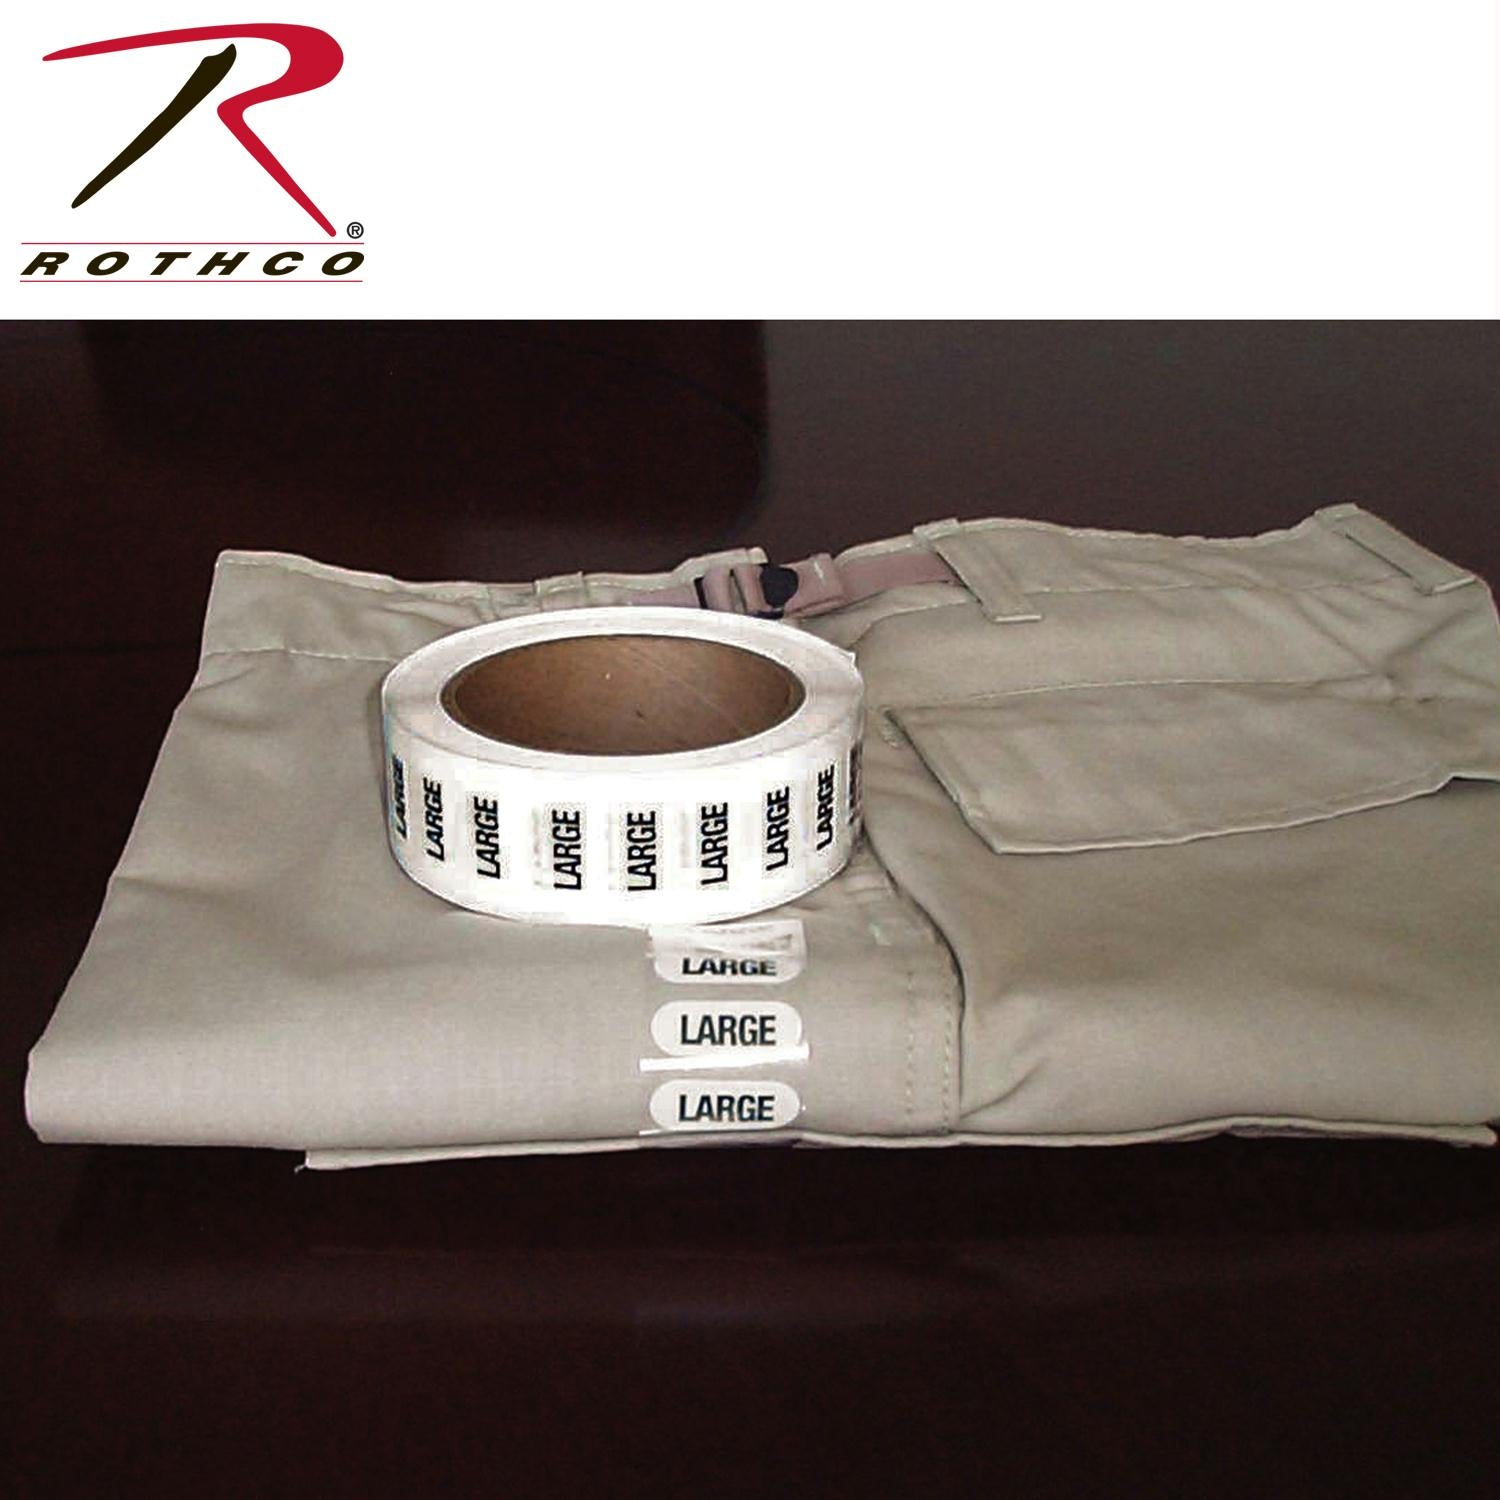 Rothco Size Strips